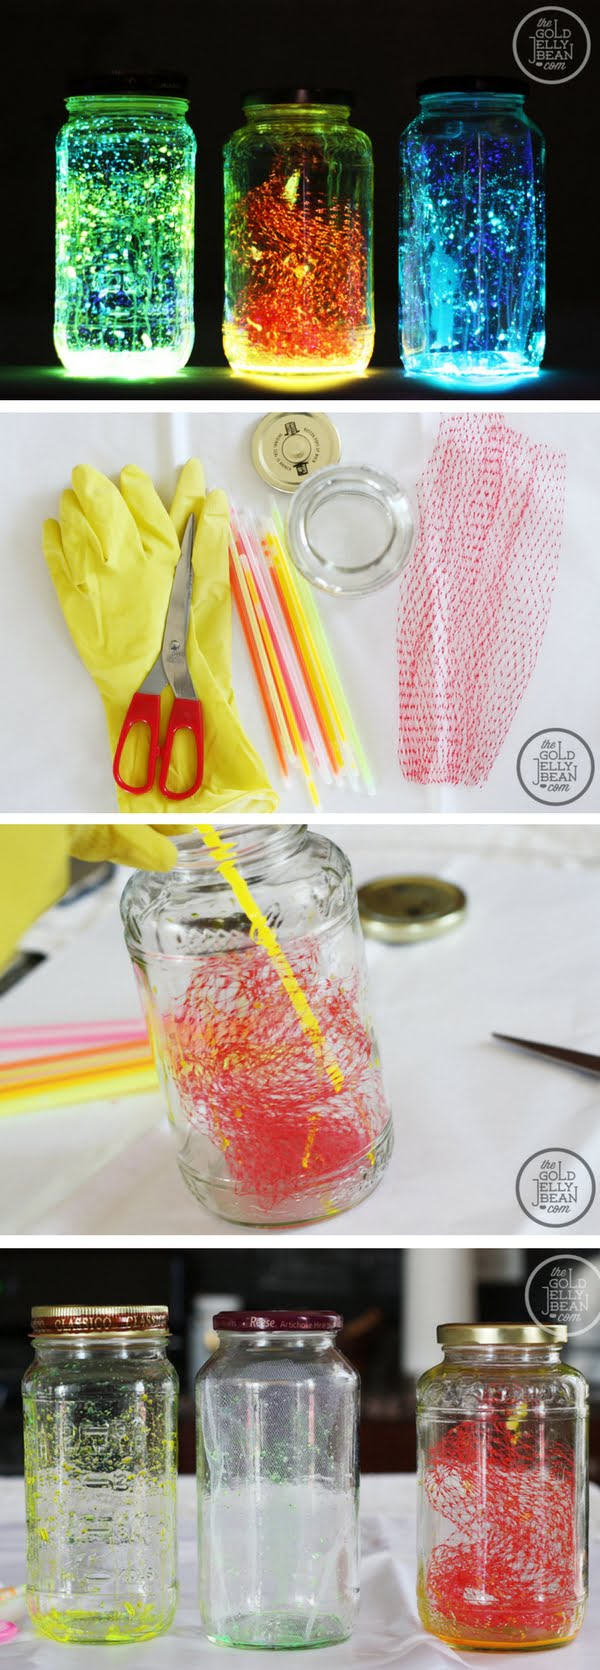 How to make easy DIY outdoor glow jar lights